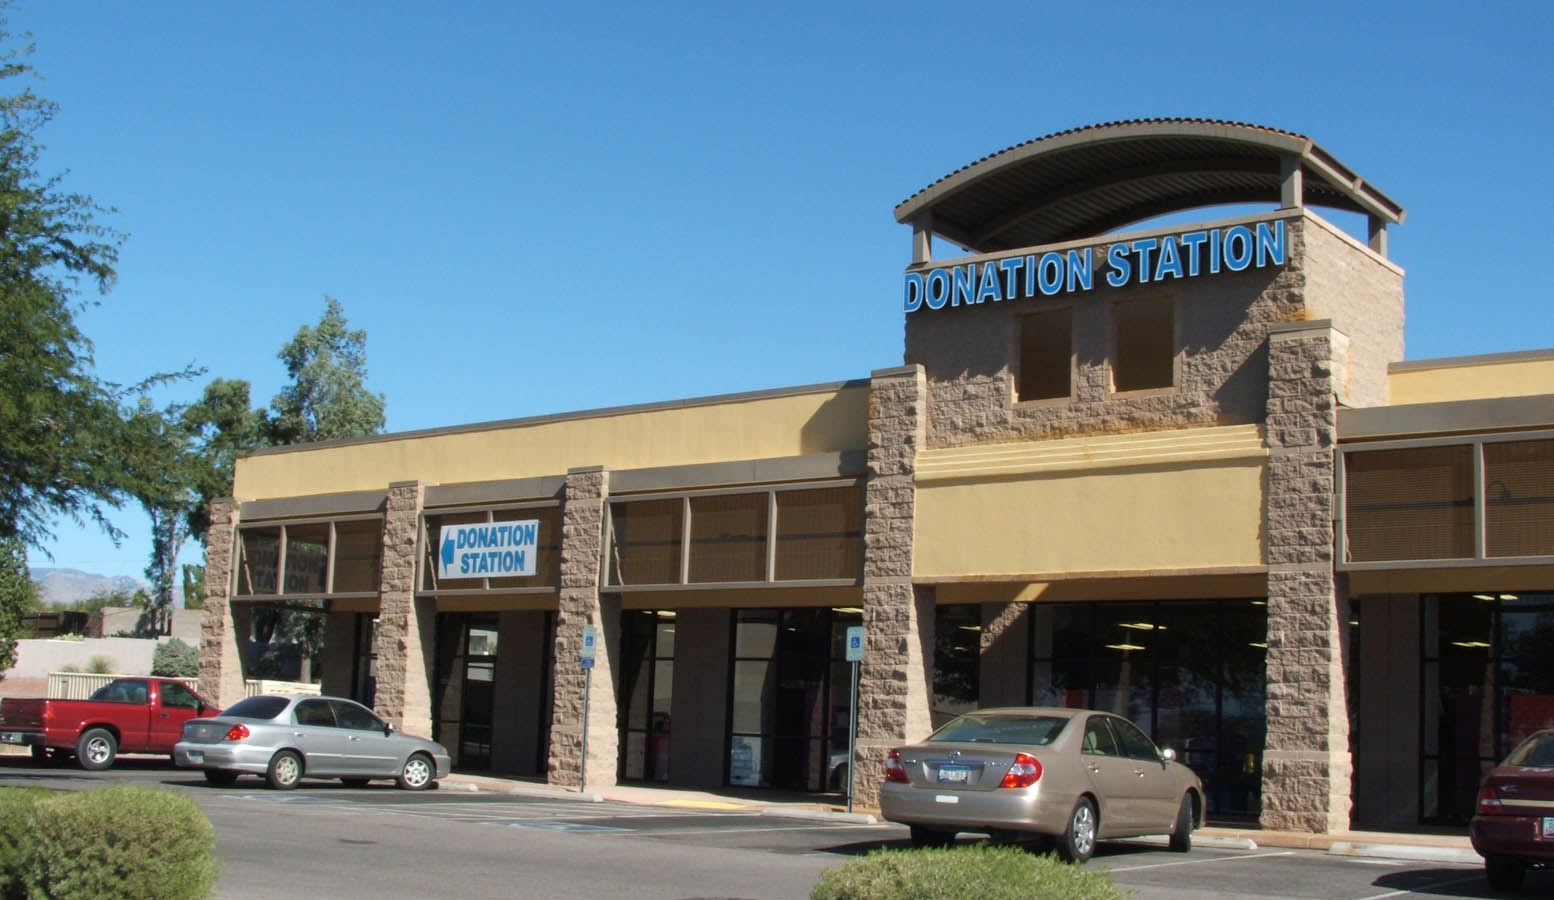 Commercial Property For Lease In Tucson Az